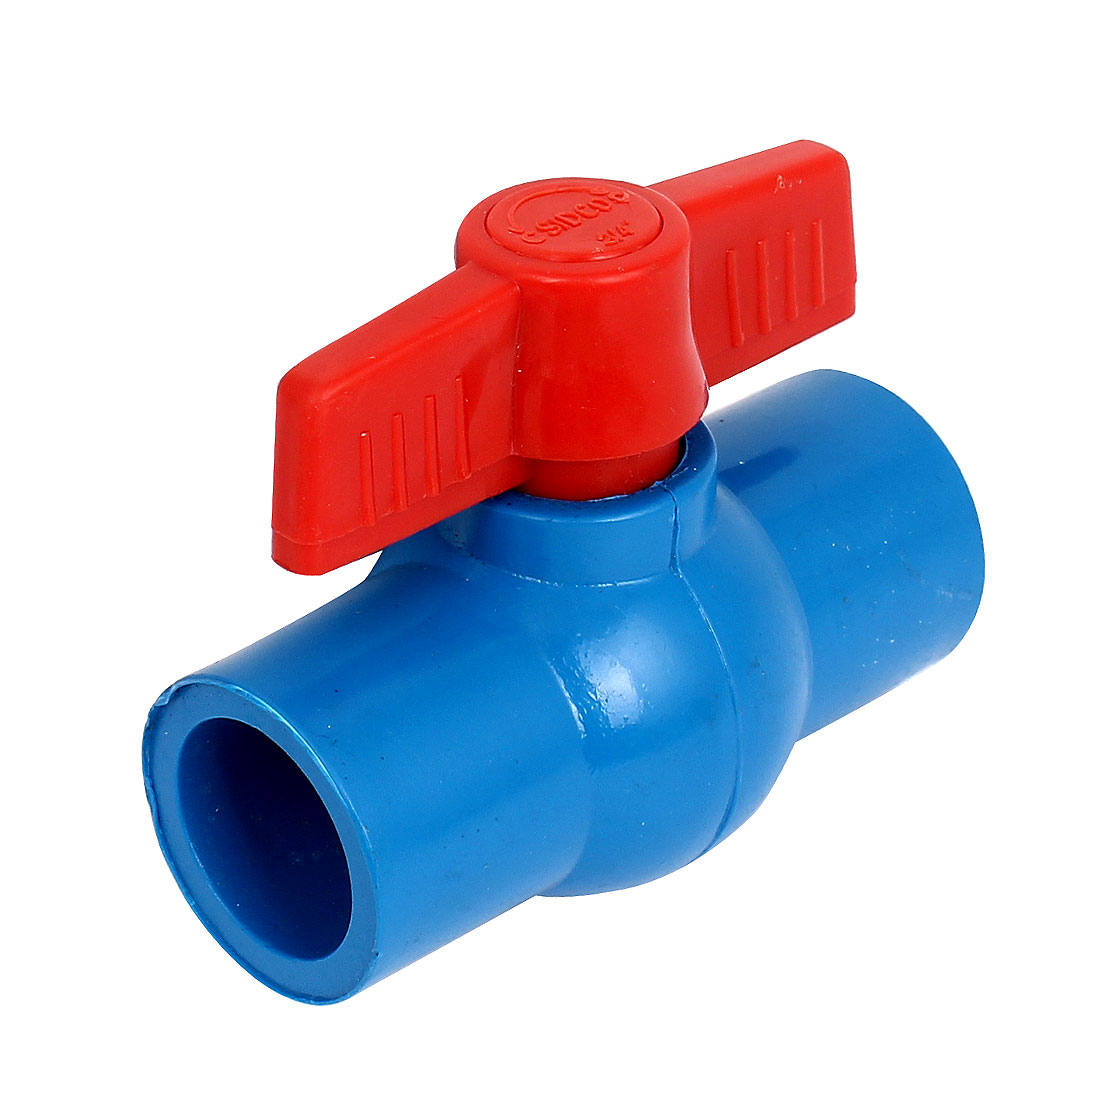 Water Supply 25mm 3/4BSP Full Port U-PVC Ball Valve Pipe Fitting